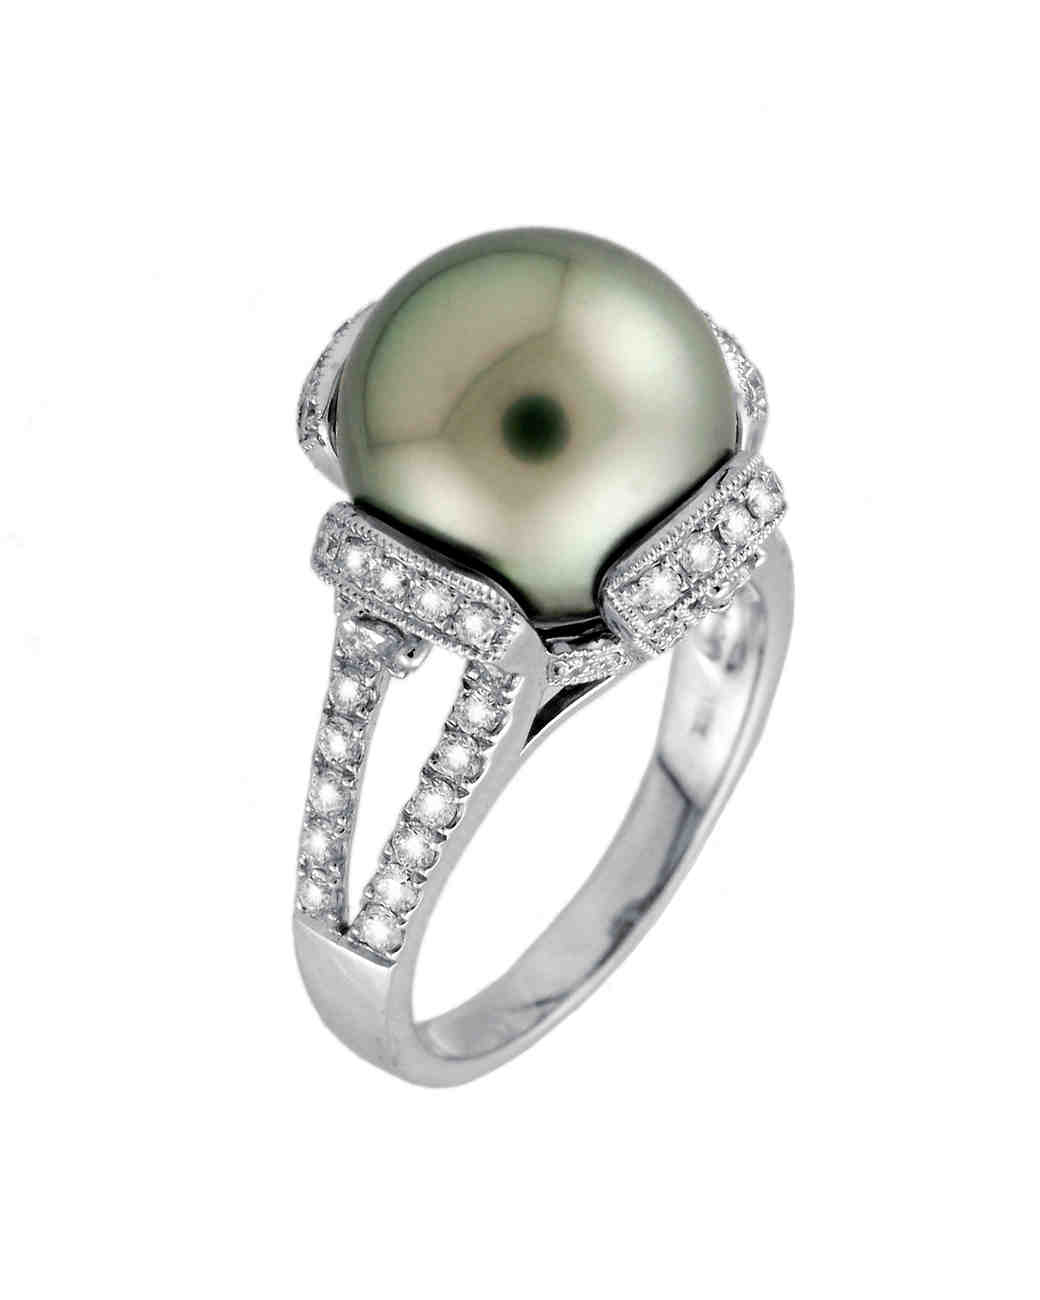 diamond chicco martha vert engagement rings pearl ring pretty stewart weddings zoe